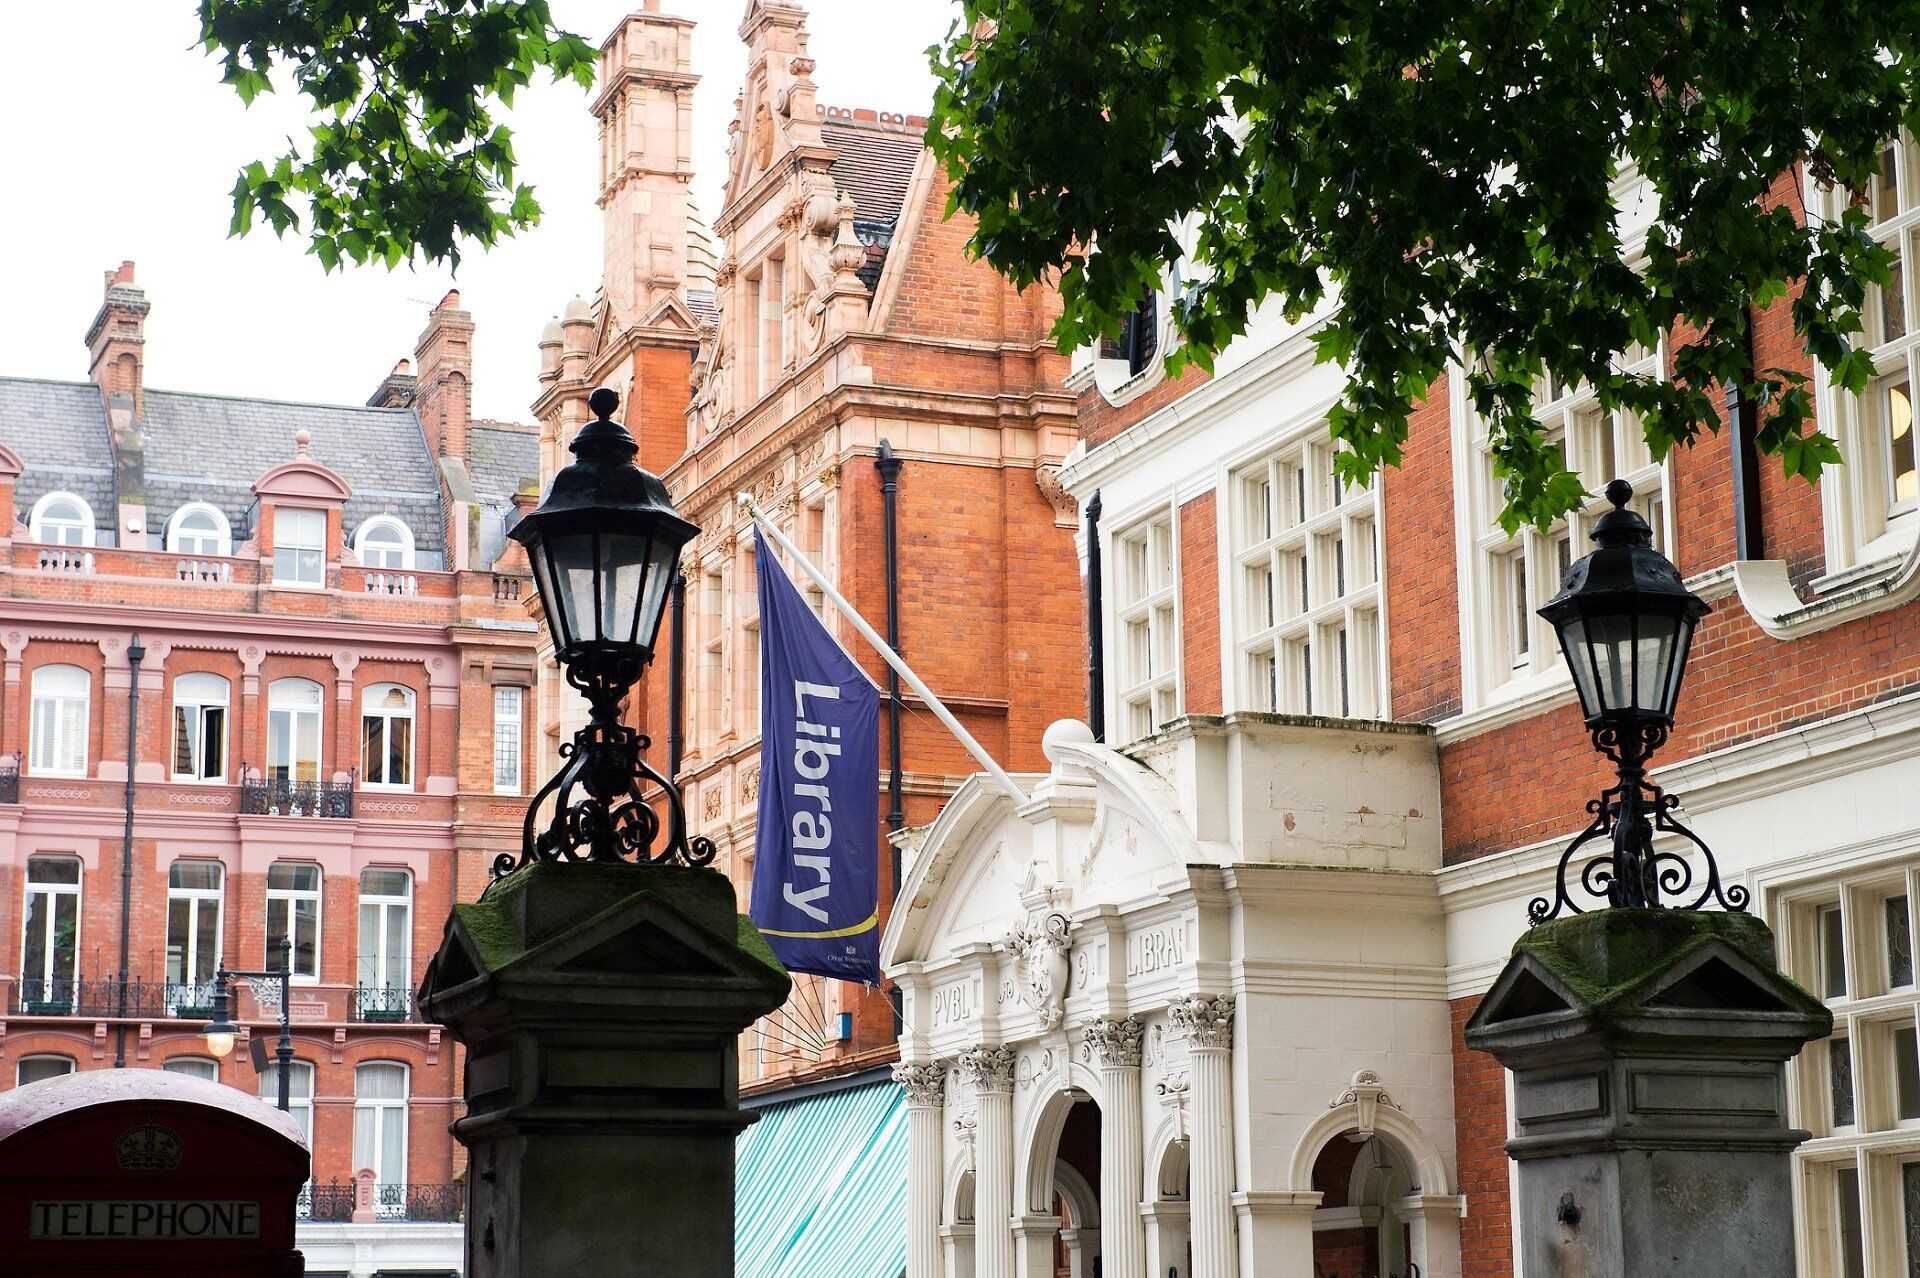 mayfair library on south audley street view from mount street gardens by specialist photographer emma duggan